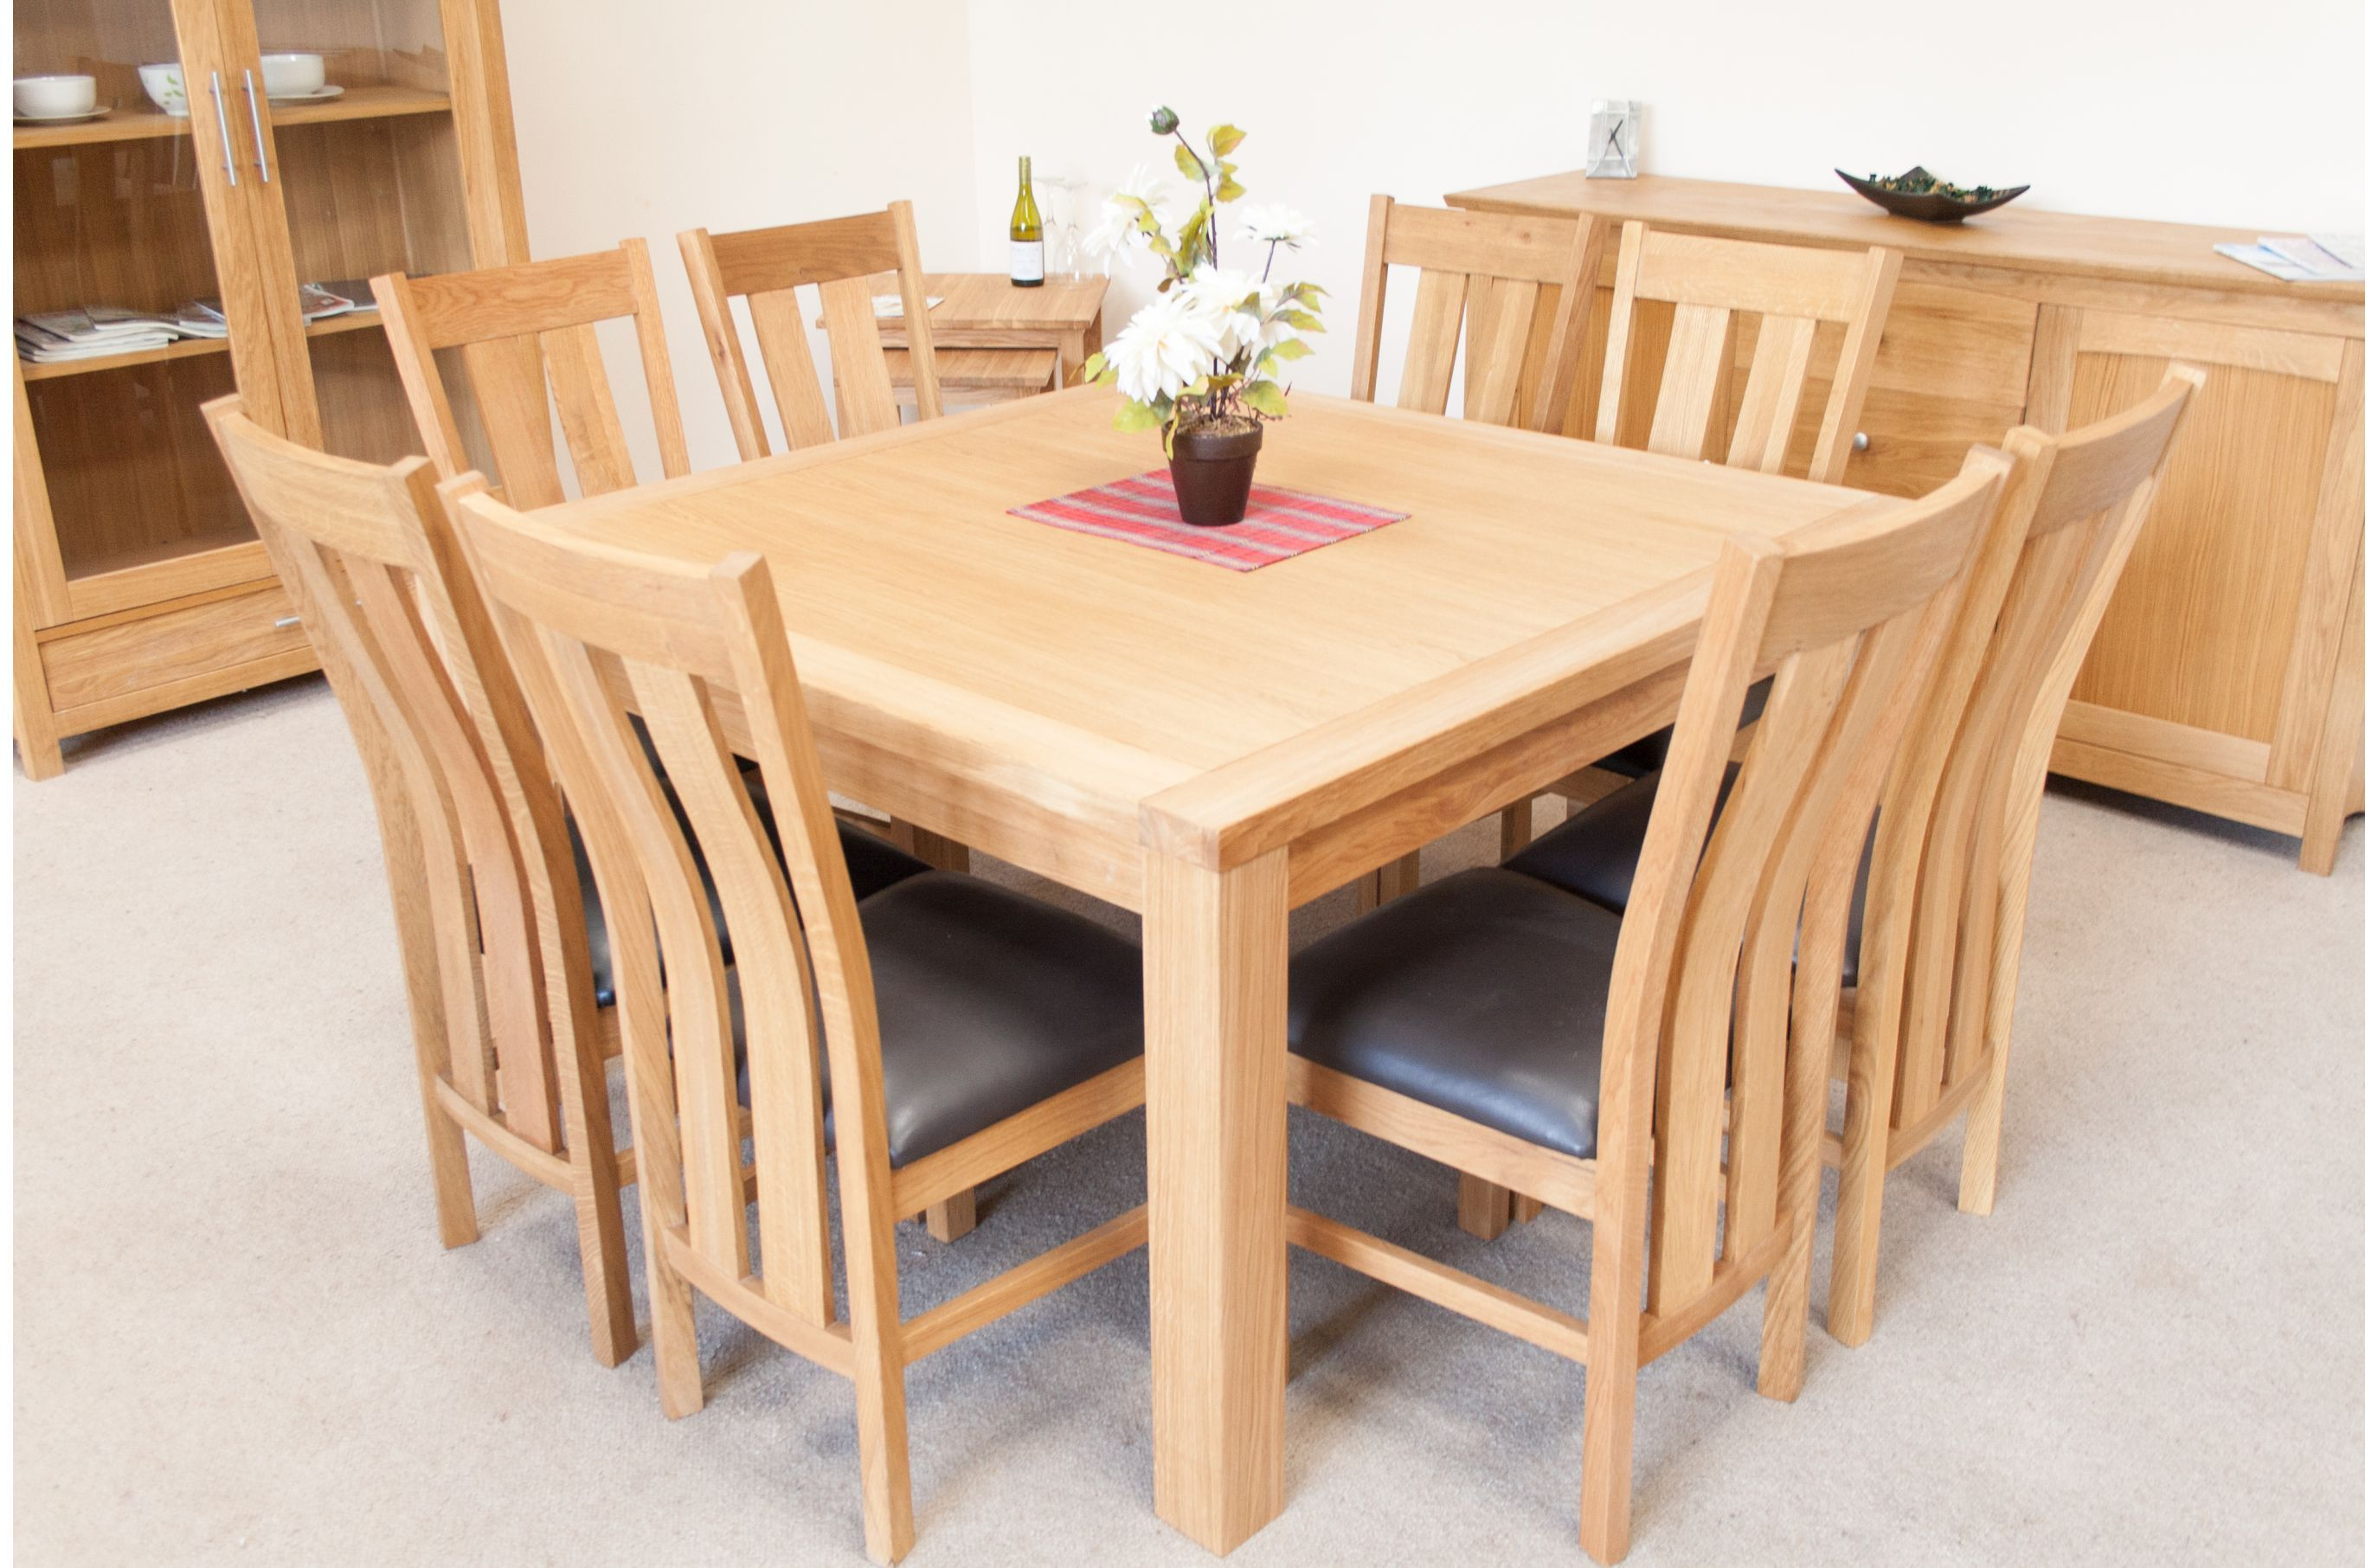 Minsk 130cm Large Square Oak Dining Table Seating 8 Dining Table